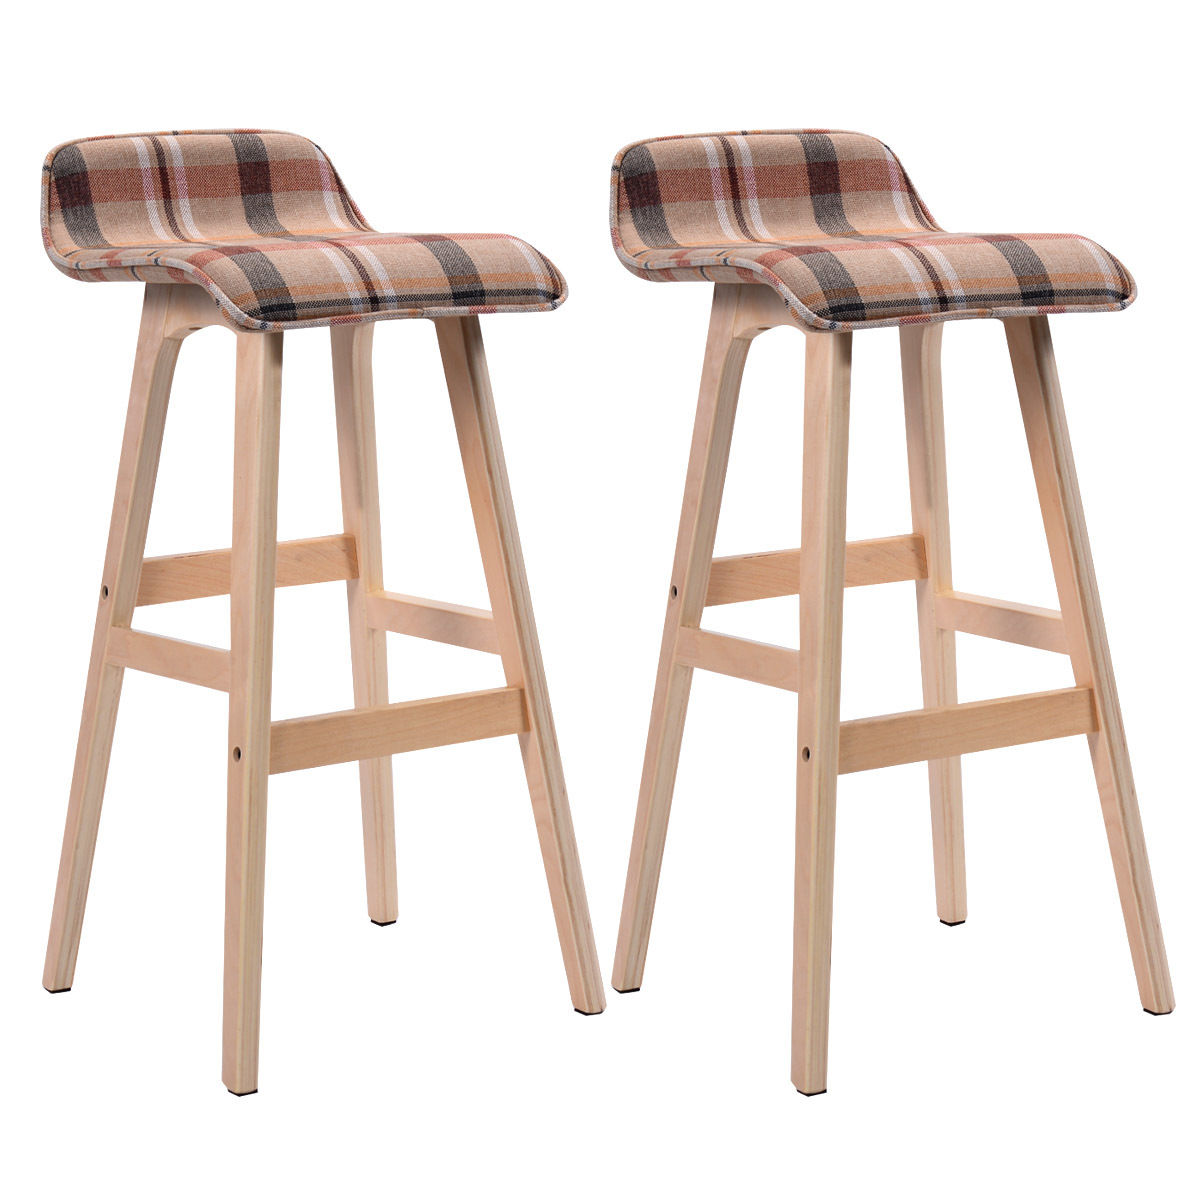 Giantex Set of 2 29-Inch Vintage Wood Bar Stool Modern Dining Chair Counter Tall Linen Fabric Kitchen Bar Furniture 2*HW52976RE bar stool breakfast kitchen bistro cafe vintage wood dining chairs modern bar chair dropshipping